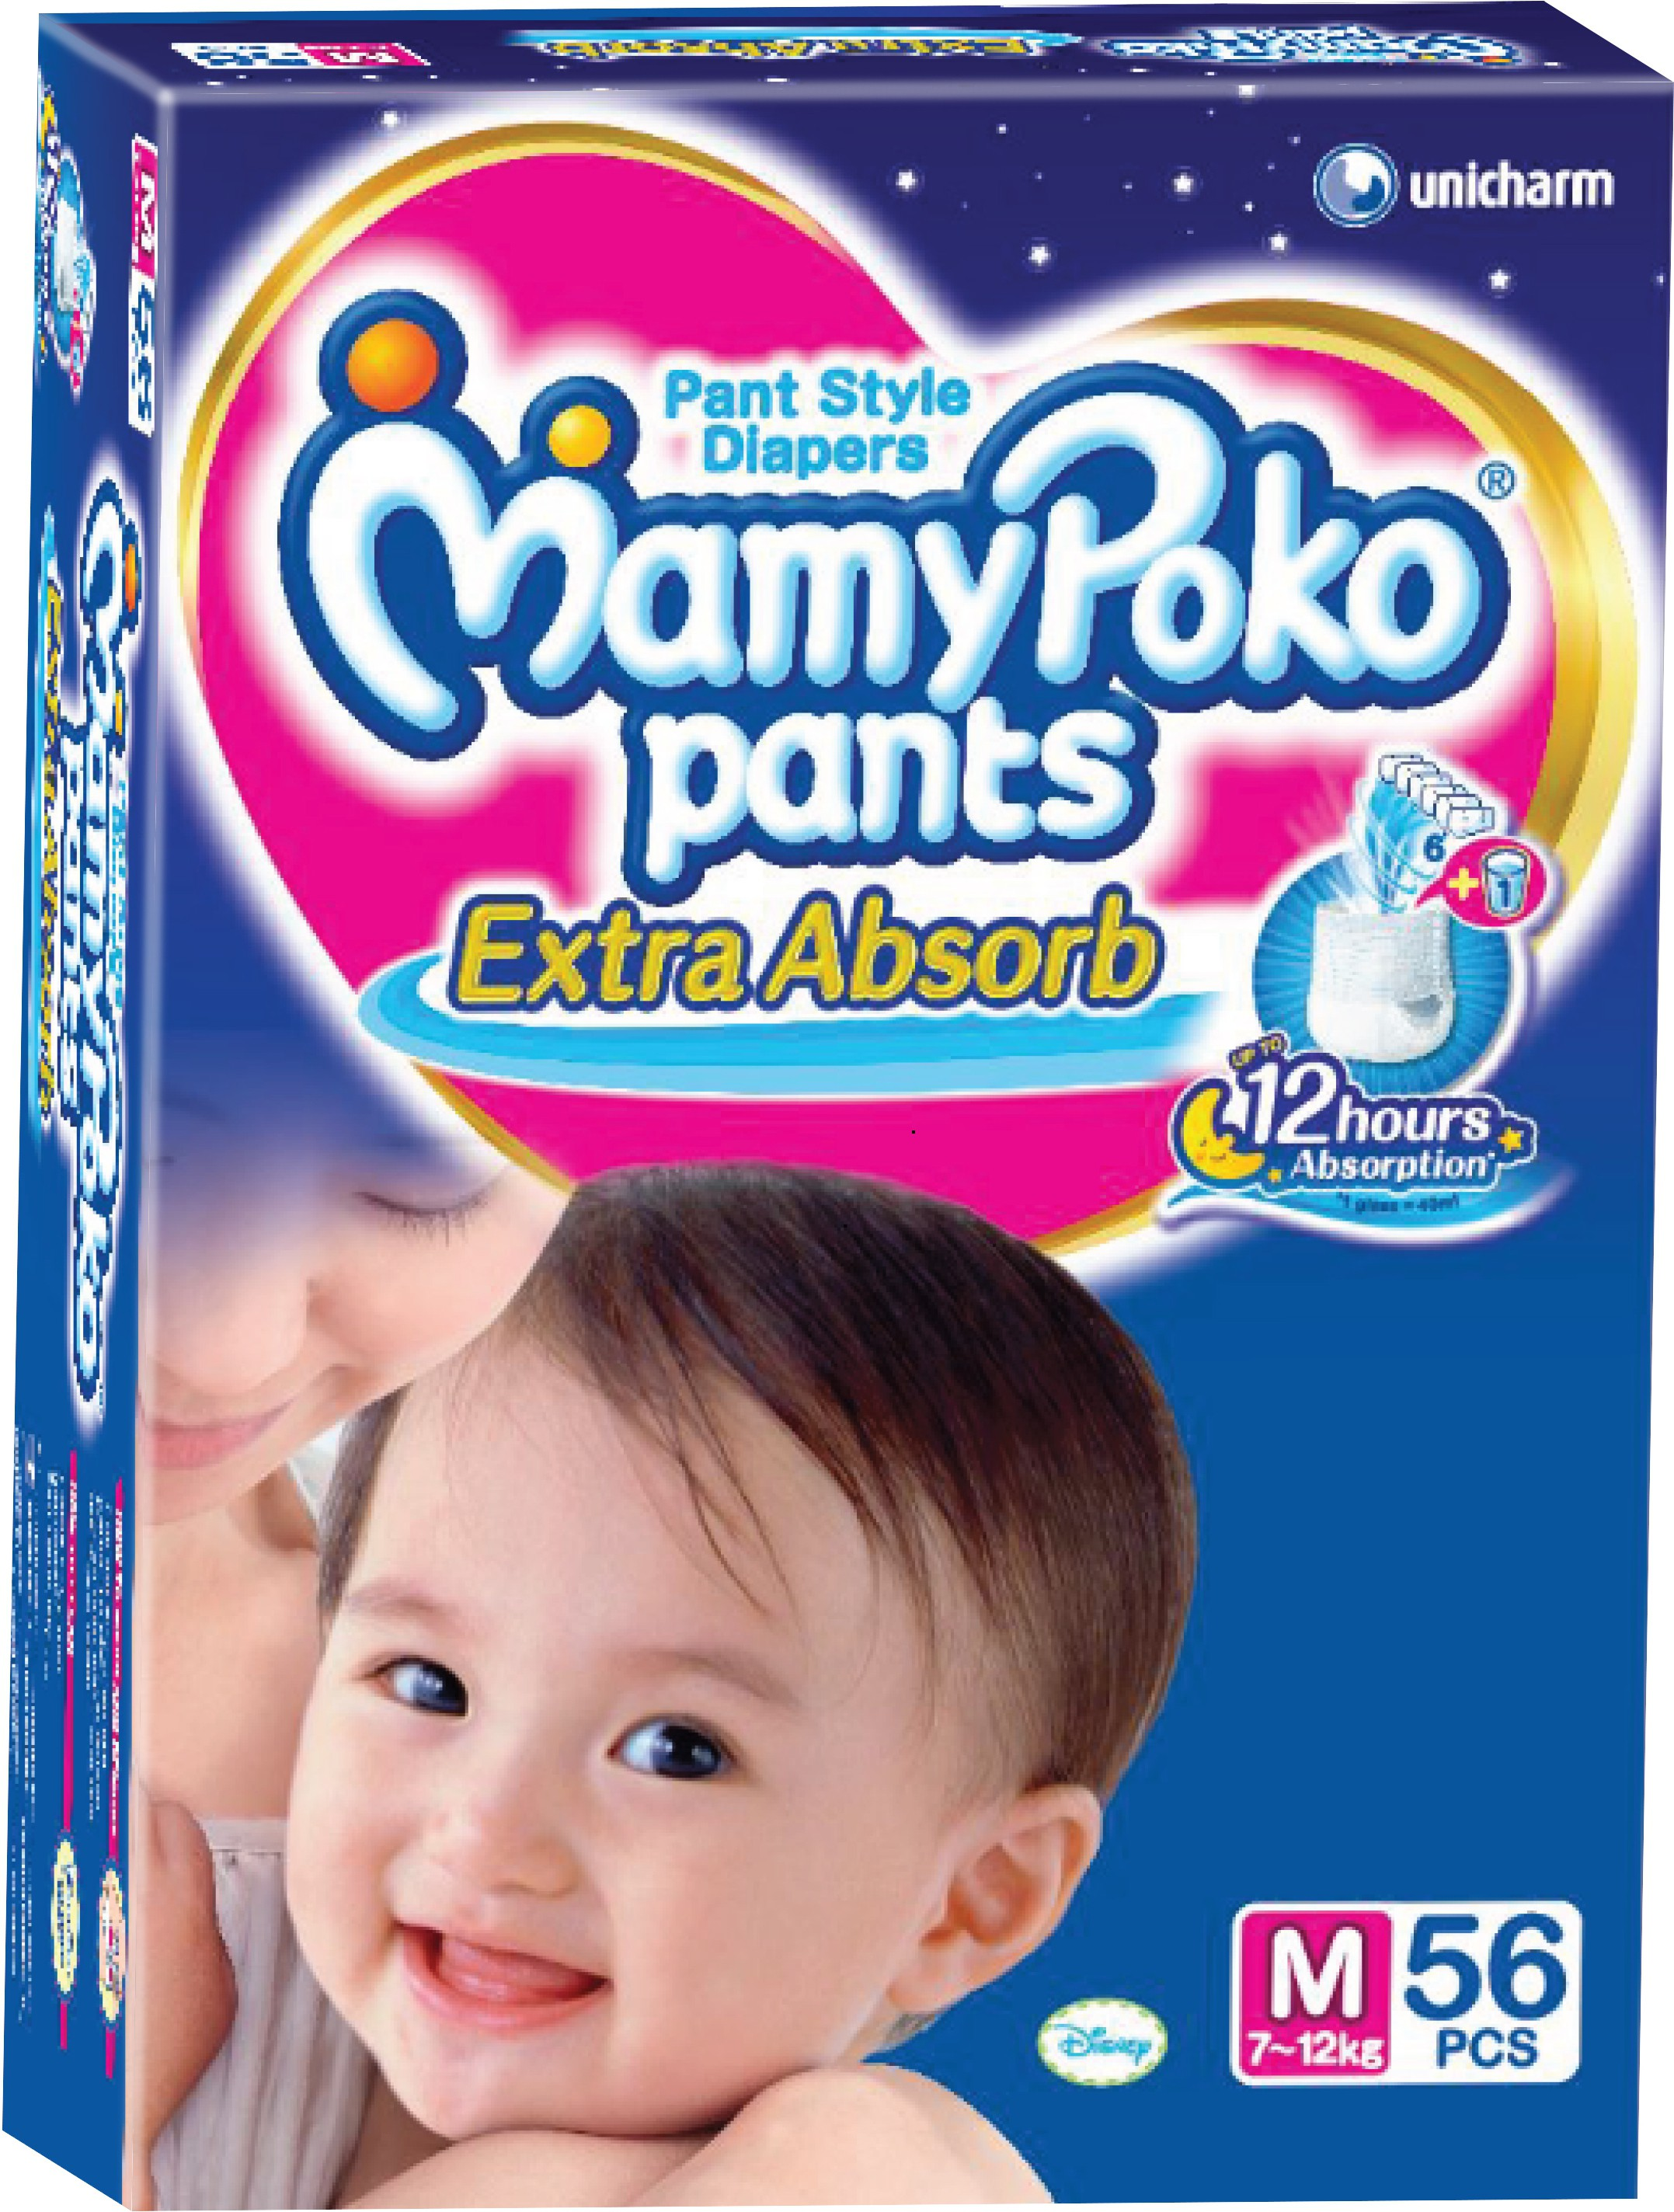 Deals - Delhi - Diapers <br> Mamy Poko<br> Category - baby_care<br> Business - Flipkart.com